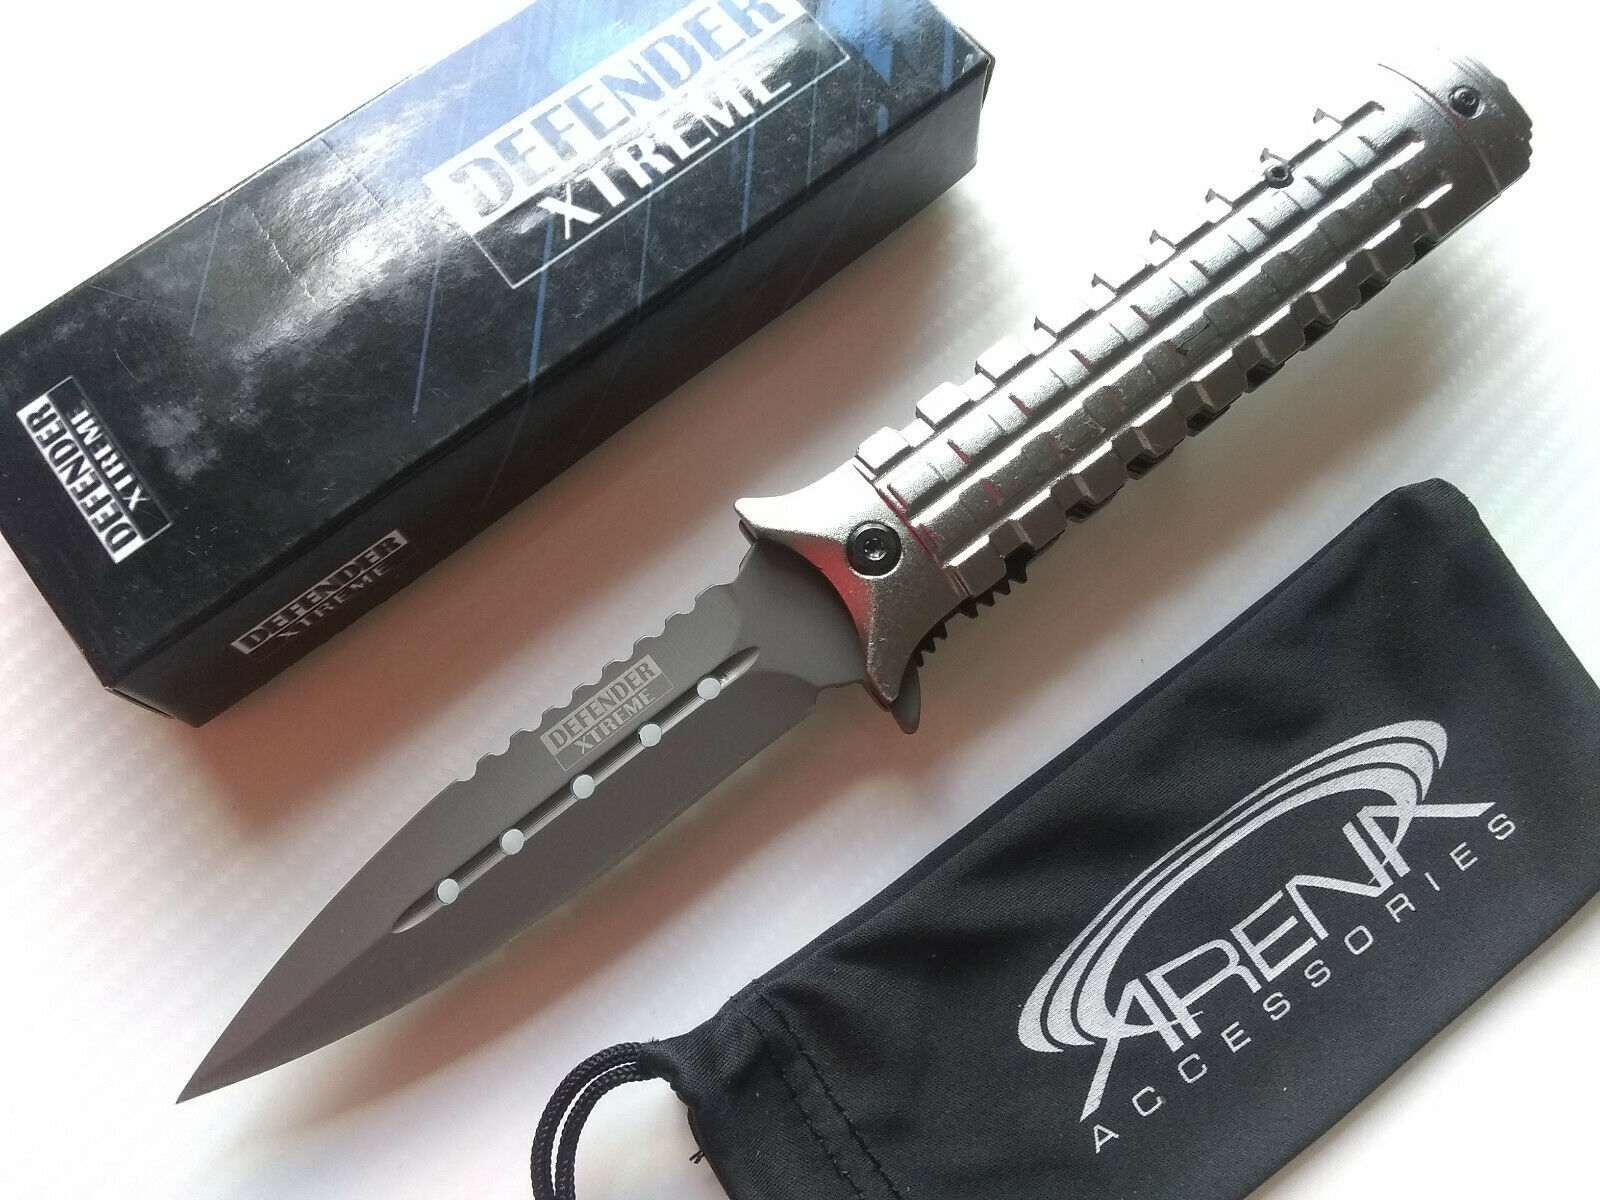 Pineapple Grenade Textured Handle Defender Xtreme Gray Spring Assisted Folding Pocket Knife 9